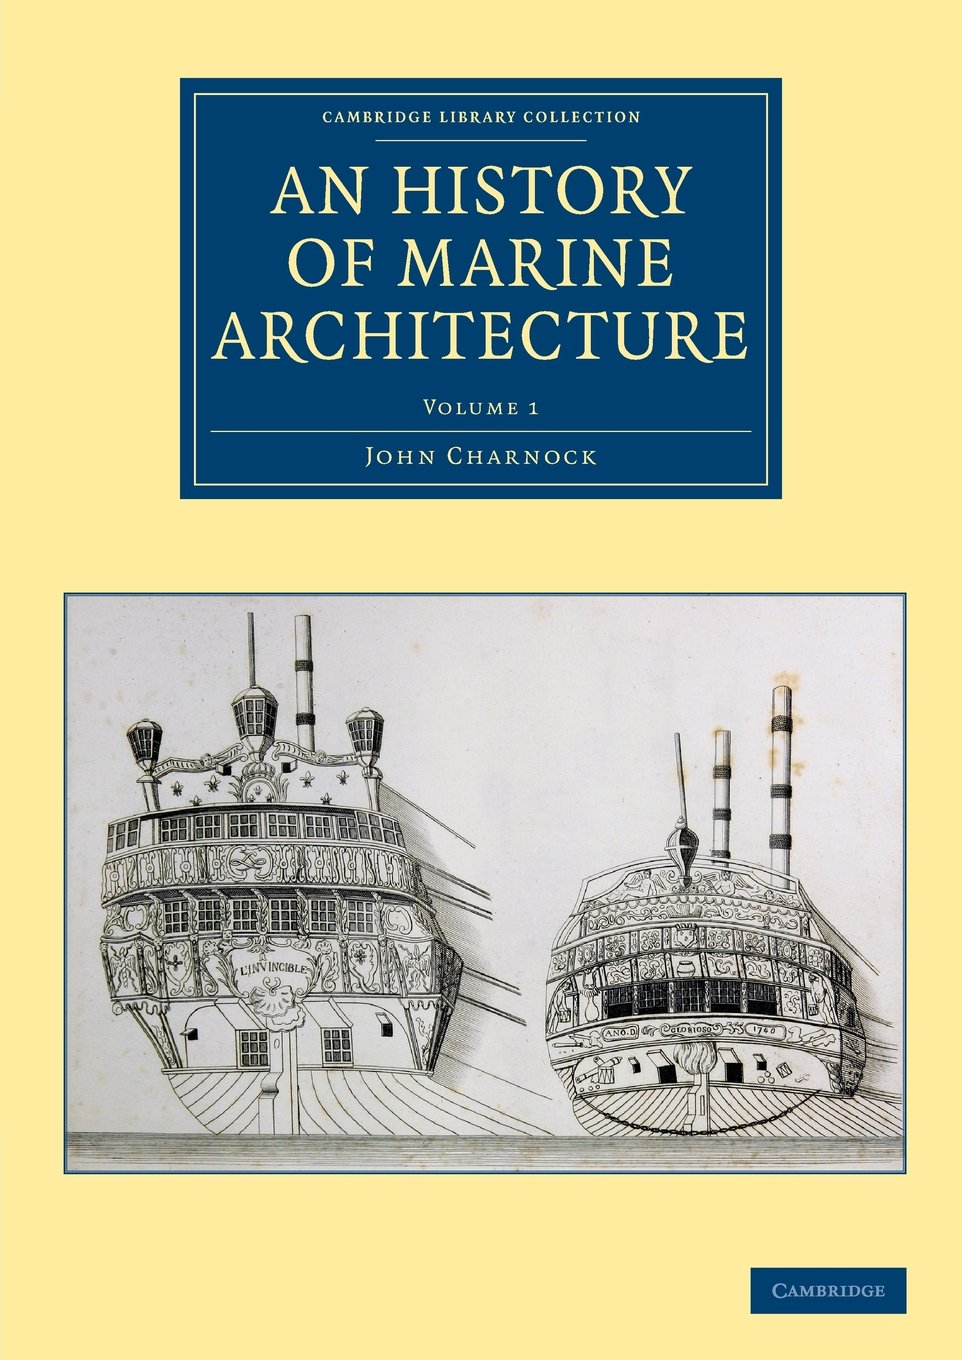 An History of Marine Architecture: Including an Enlarged and Progressive View of the Nautical Regulations and Naval History, Both Civil and Military, ... - Naval and Military History) (Volume 1) PDF